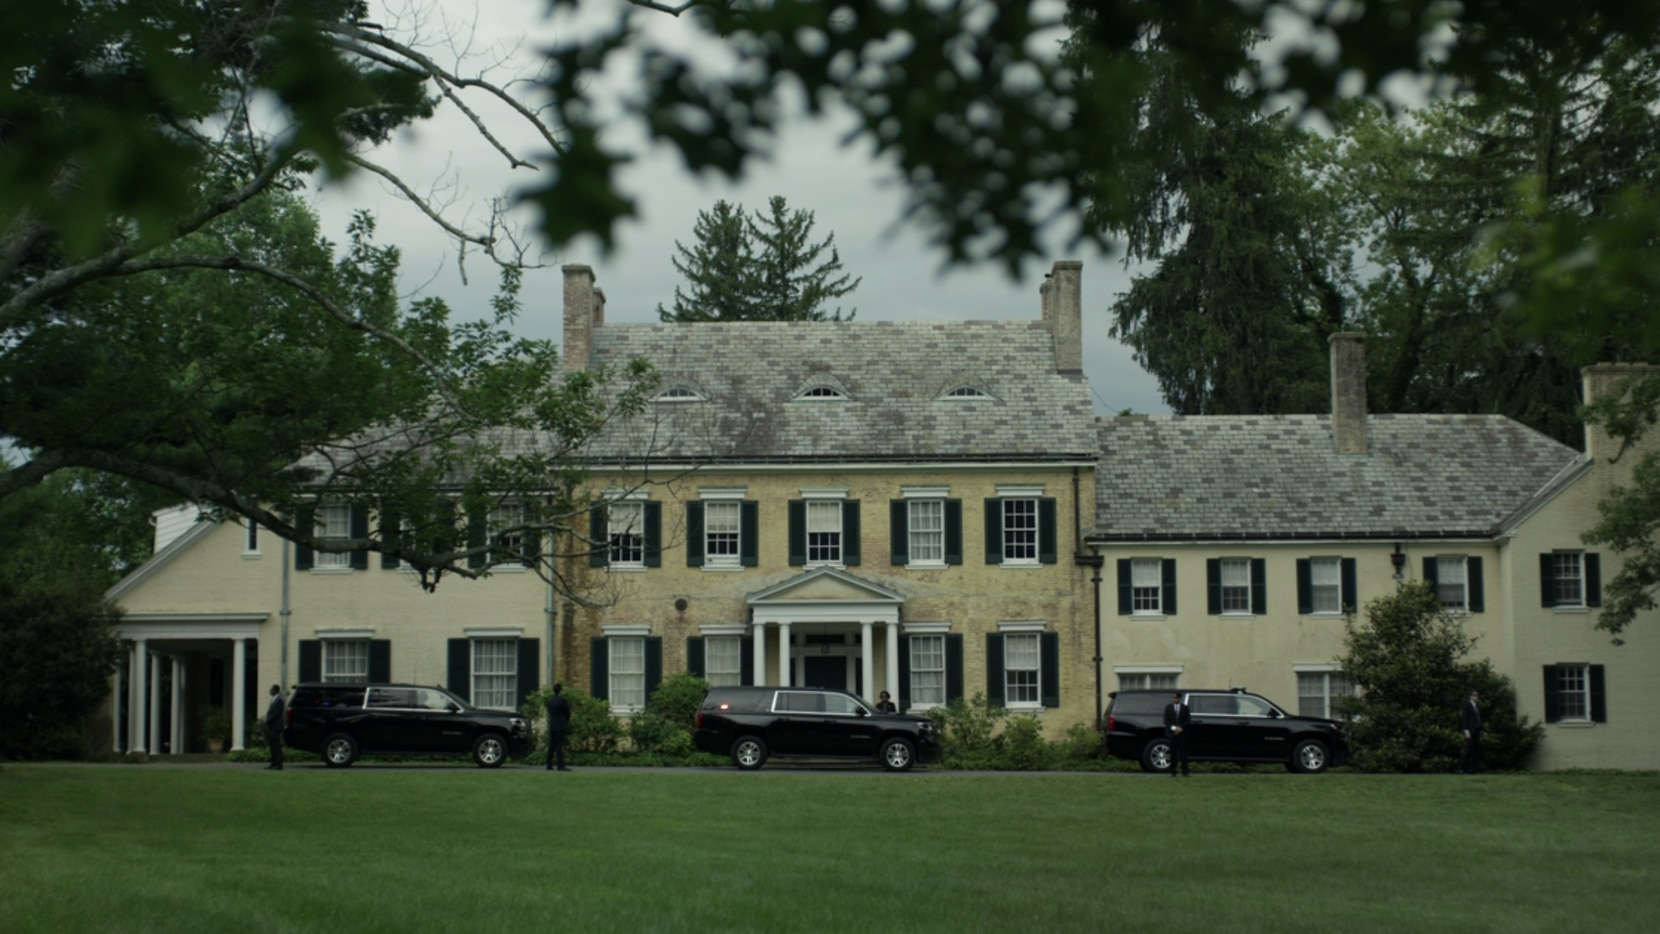 Here's the Highland Park estate where Claire Underwood's mother lives. Pop quiz: Does this look like Dallas?